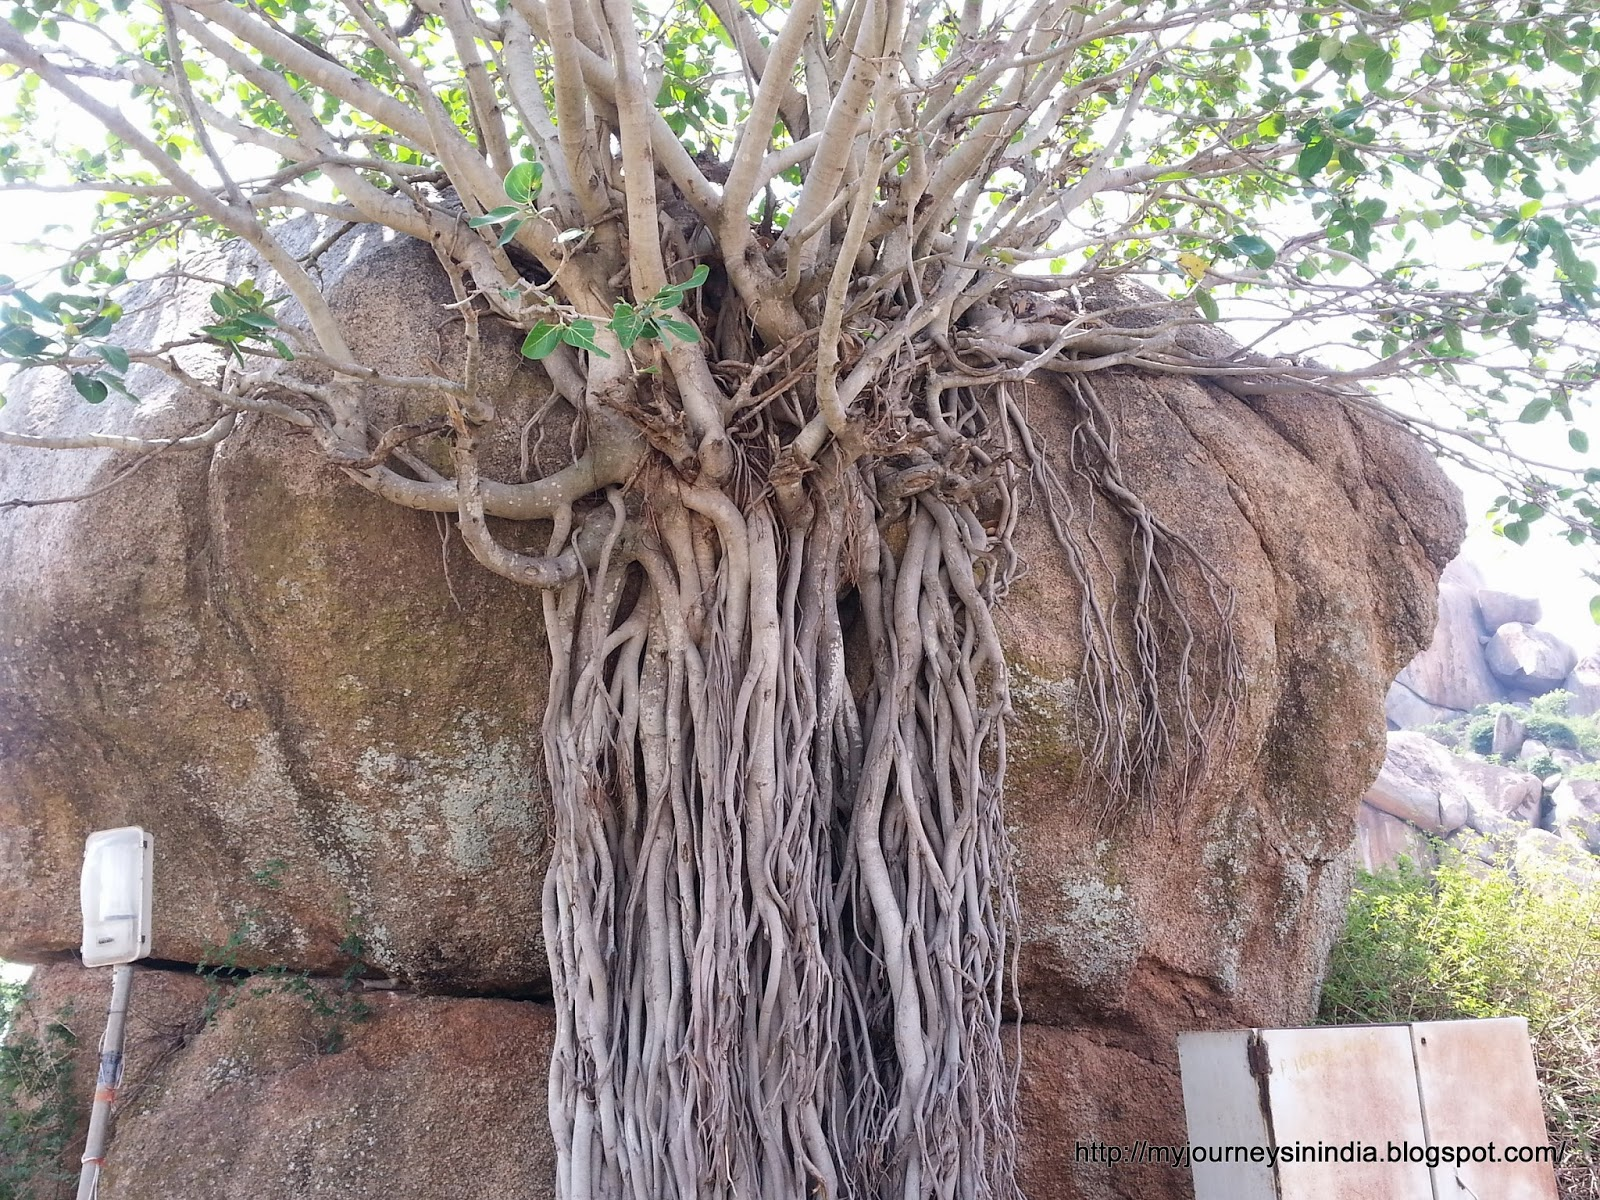 Chitradurga - Tree growing on rocks